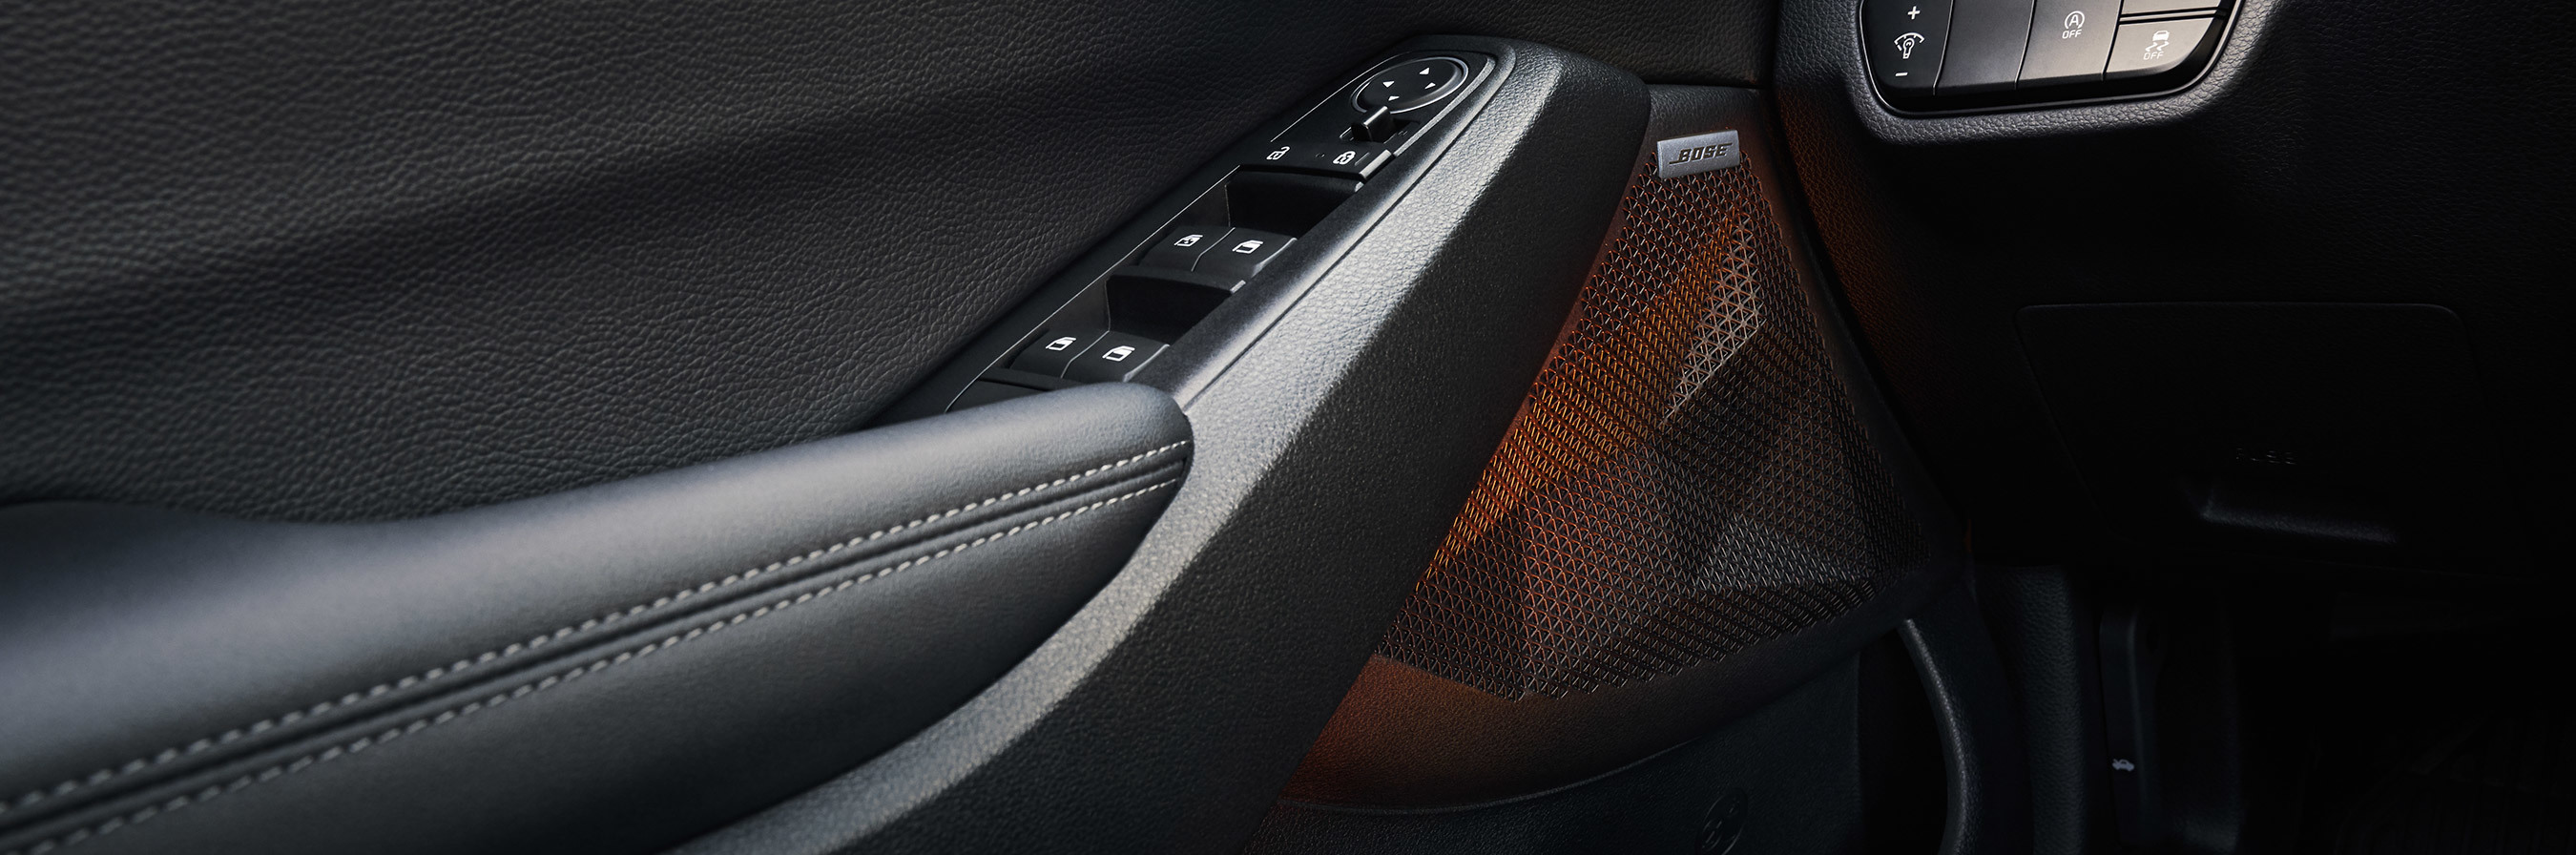 Bose Speakers in the 2020 Seltos